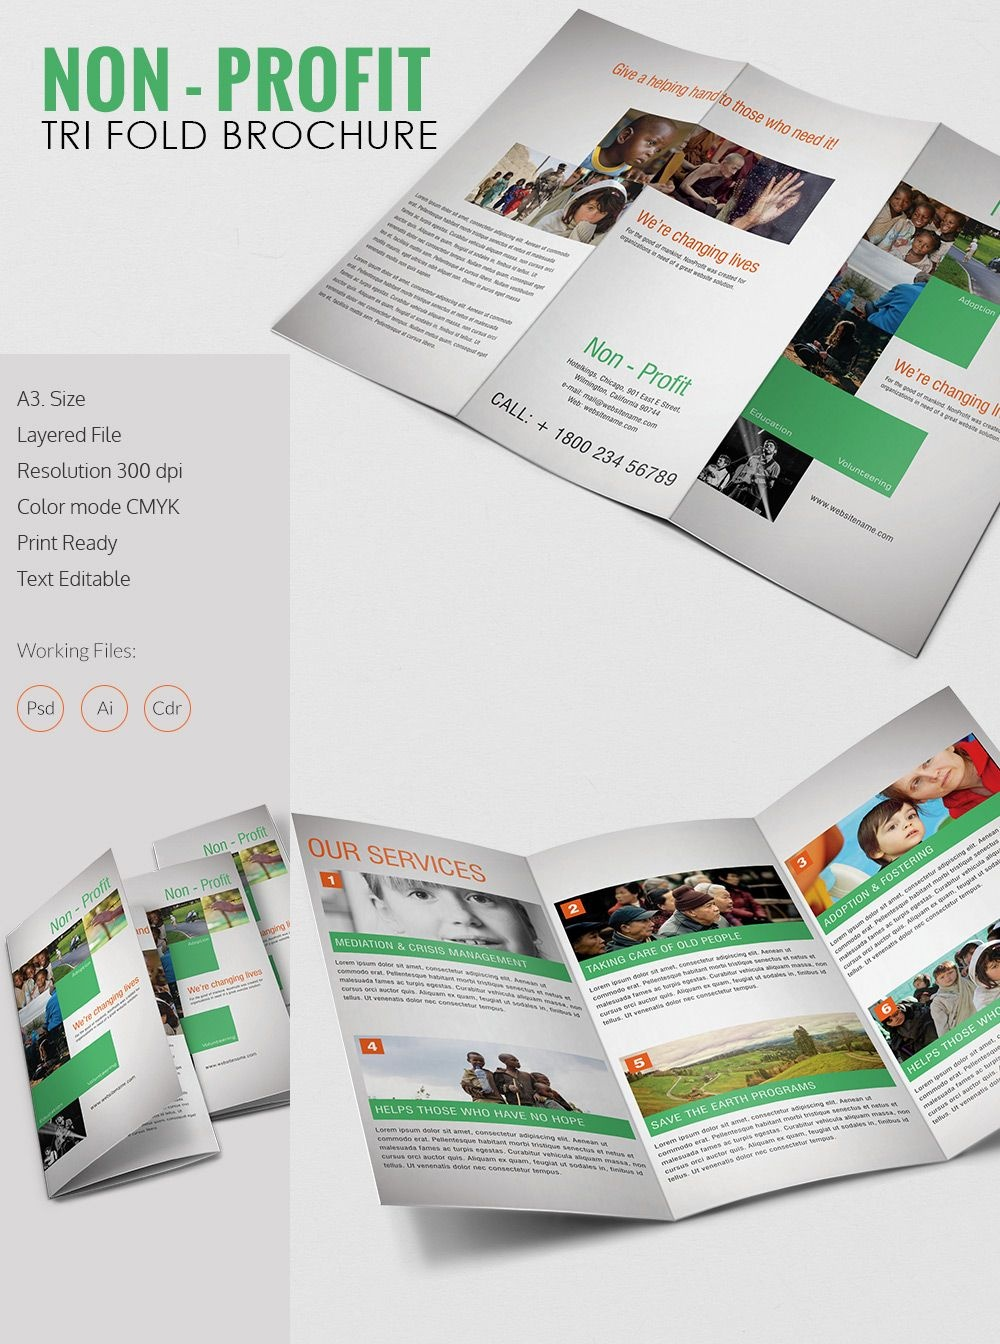 Tri Fold Brochure Template - 43+ Free Word, Pdf, Psd, Eps, Indesign - Free Printable Brochure Maker Download